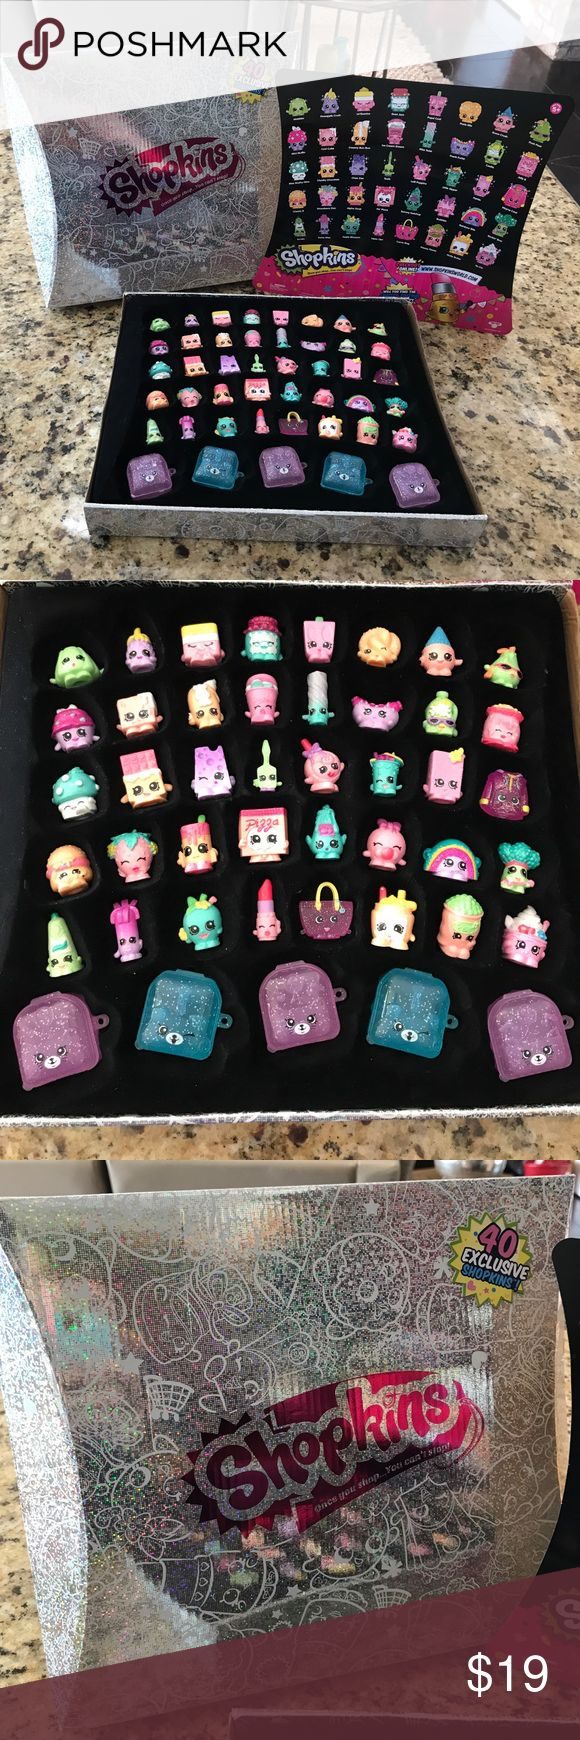 Shopkins 40 piece exclusive set in box This is a box set of 40 exclusive Shopkins in the original box!! My daughter got these as a gift for Christmas and she never played with them so they are brand new without tags! Pictures should show everything but let me know if you need more details:) Shopkins Other